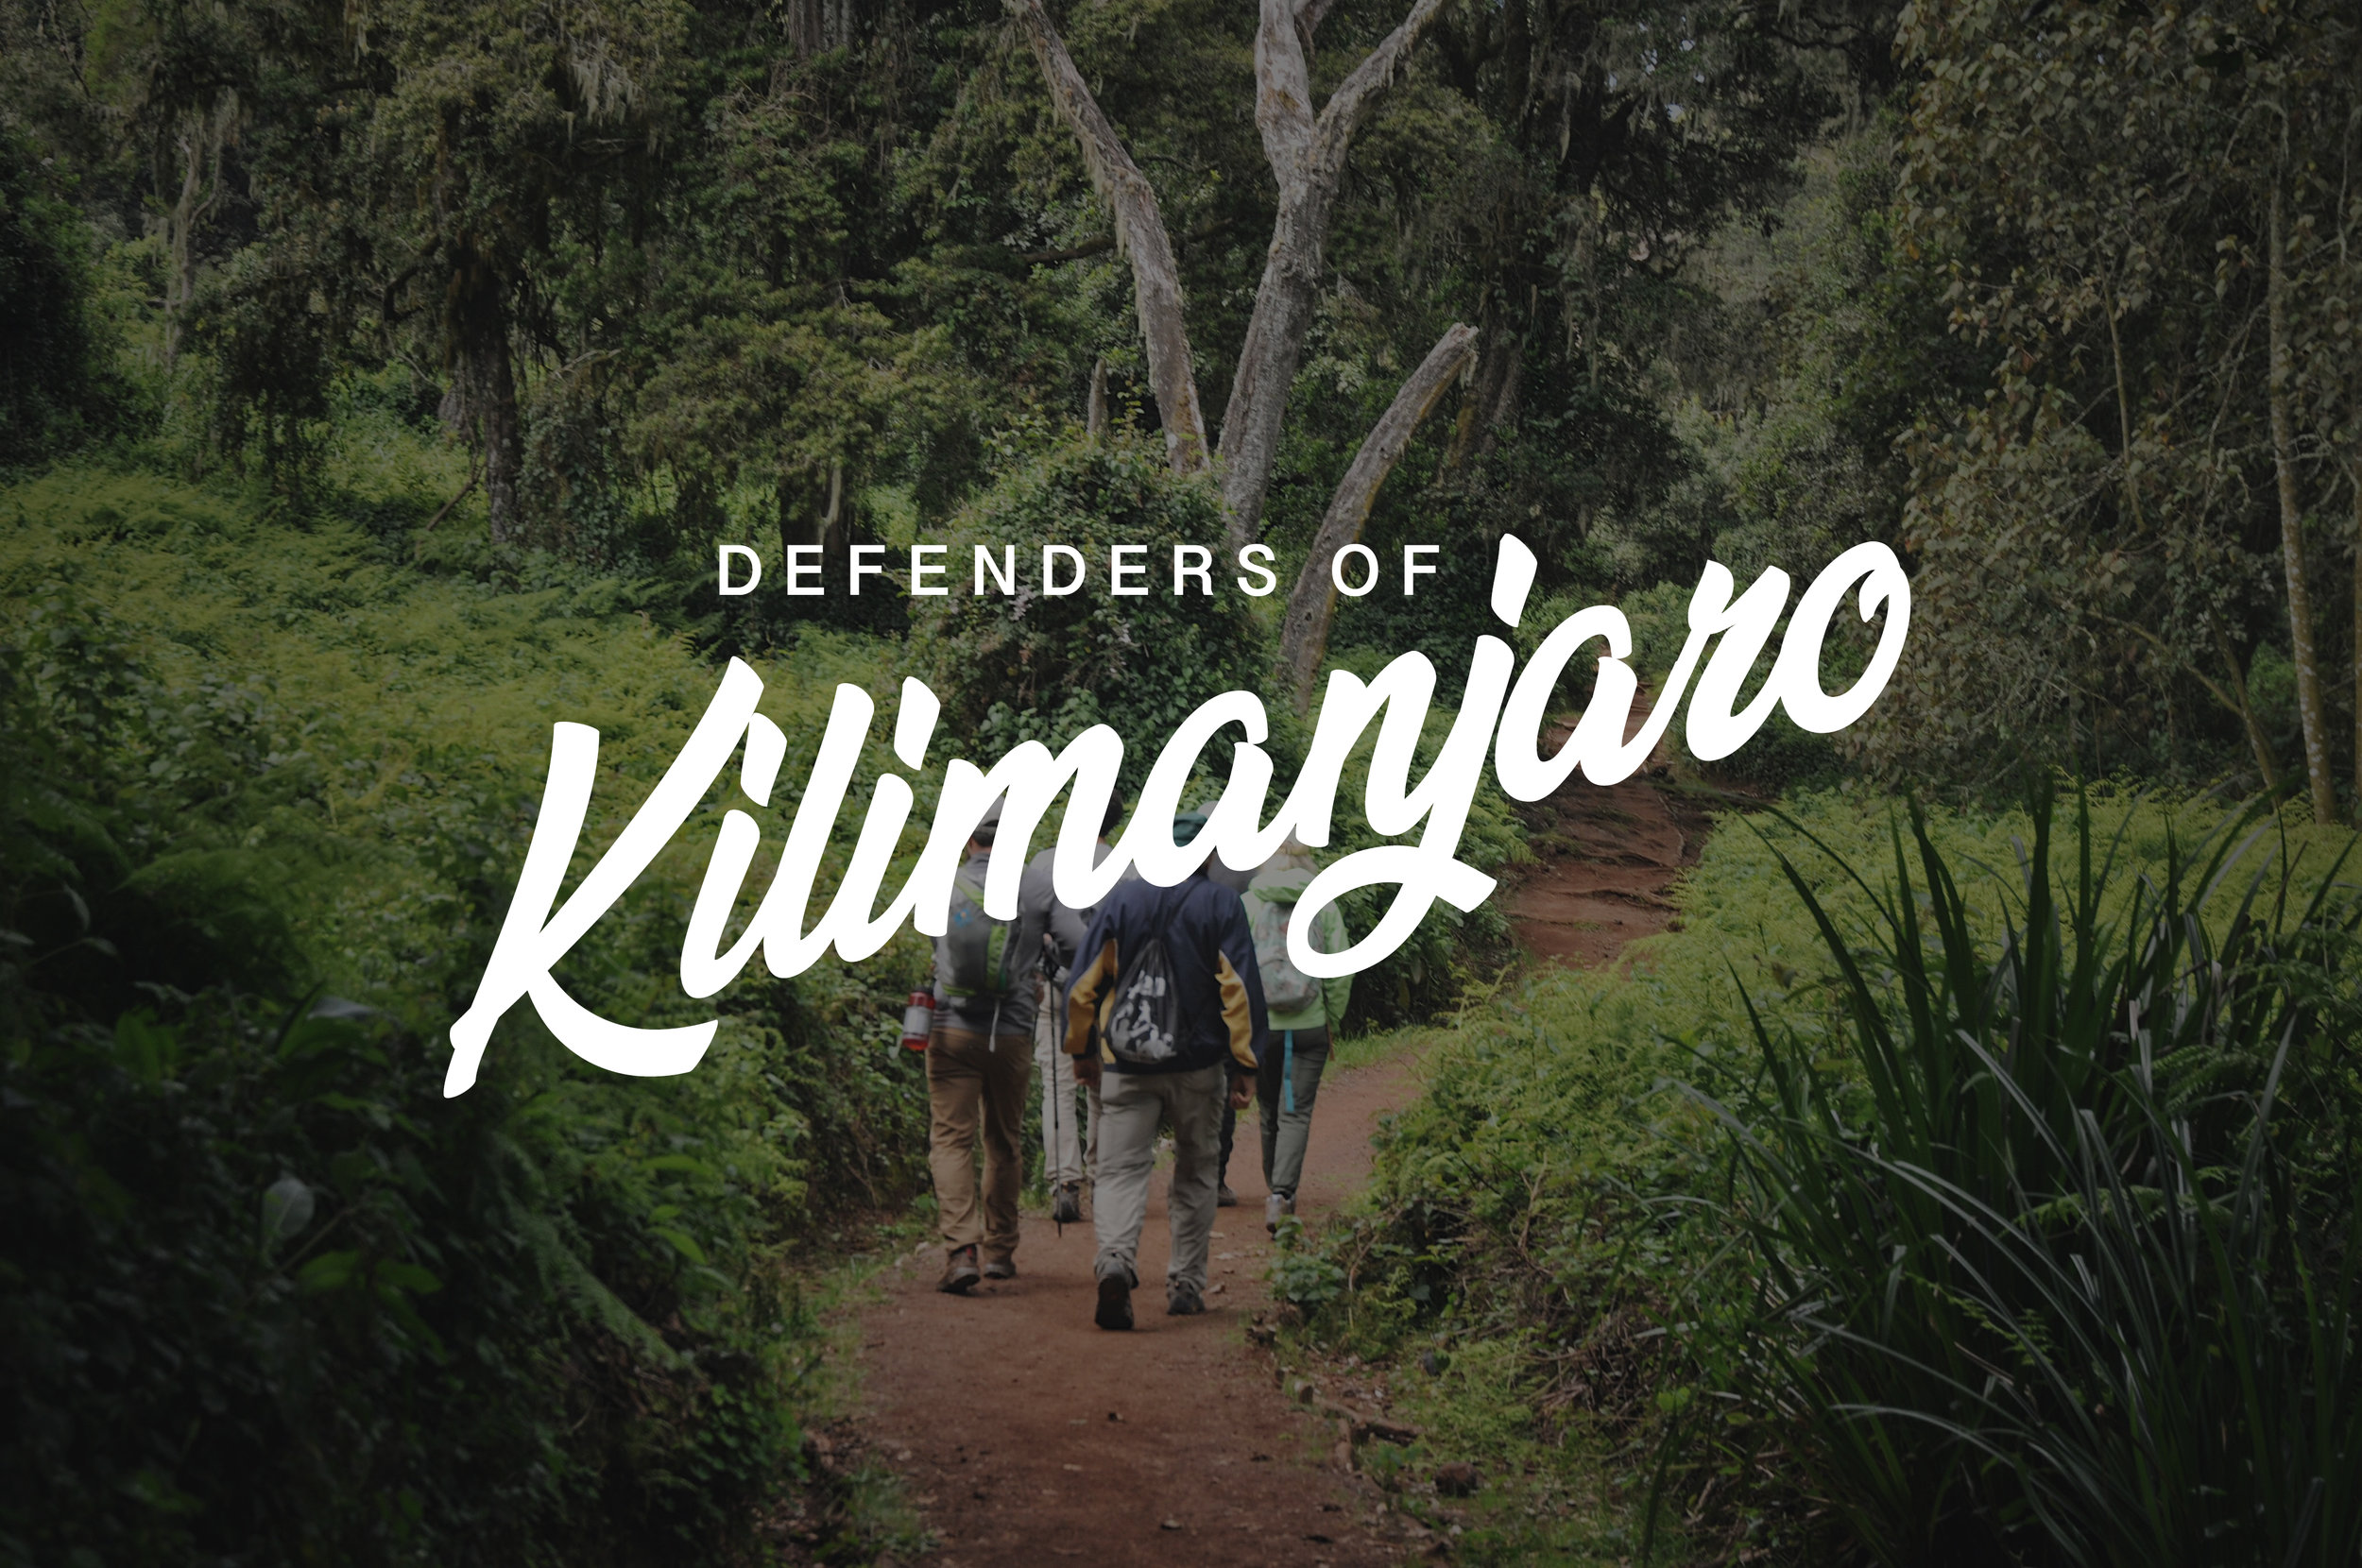 Mt. Kilimanjaro's ice cap is a matter of survival for the villages that live below.